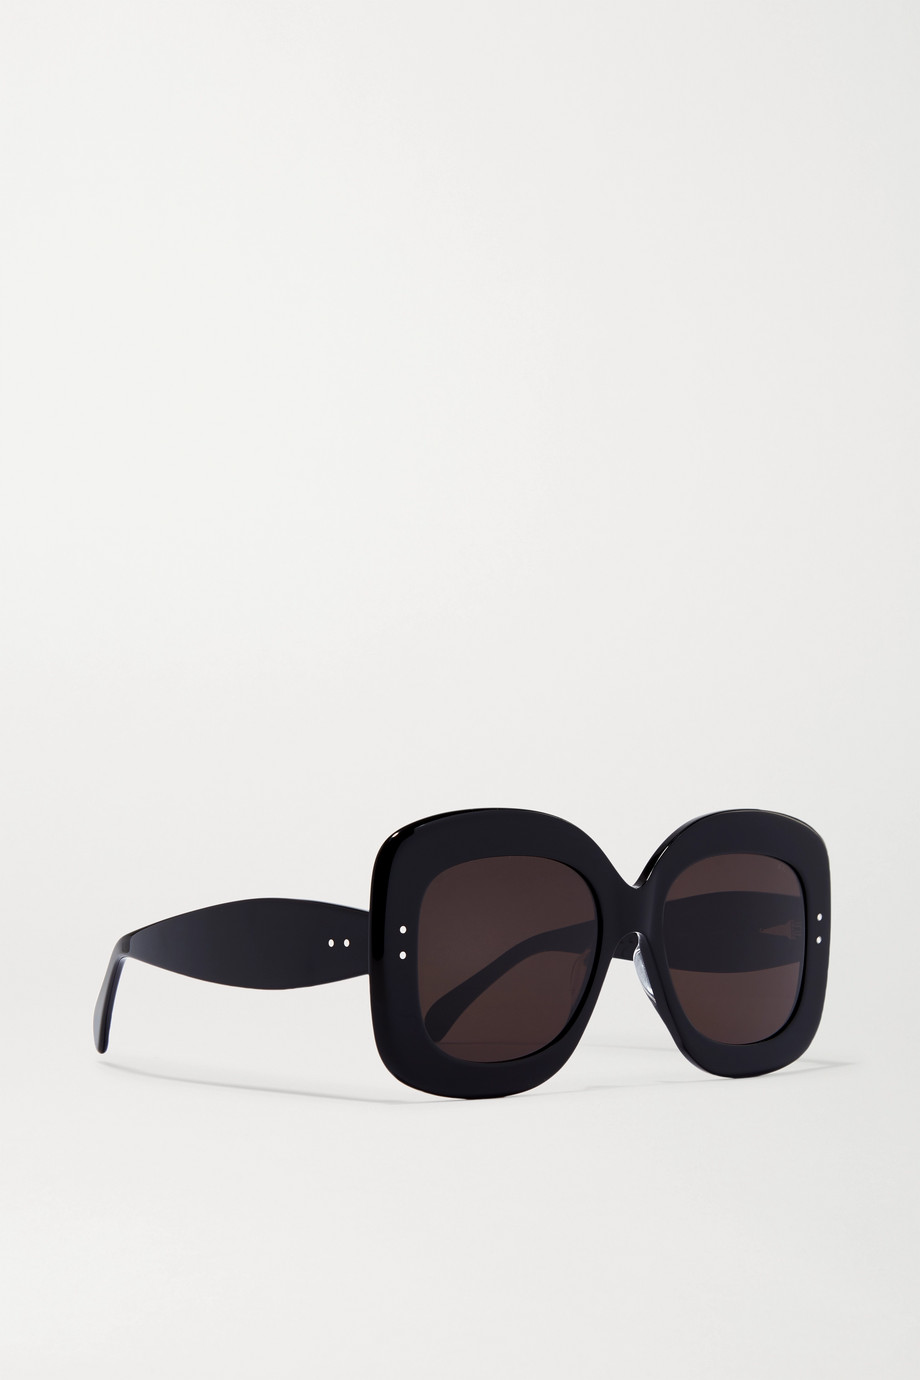 Alaïa Square-frame acetate sunglasses